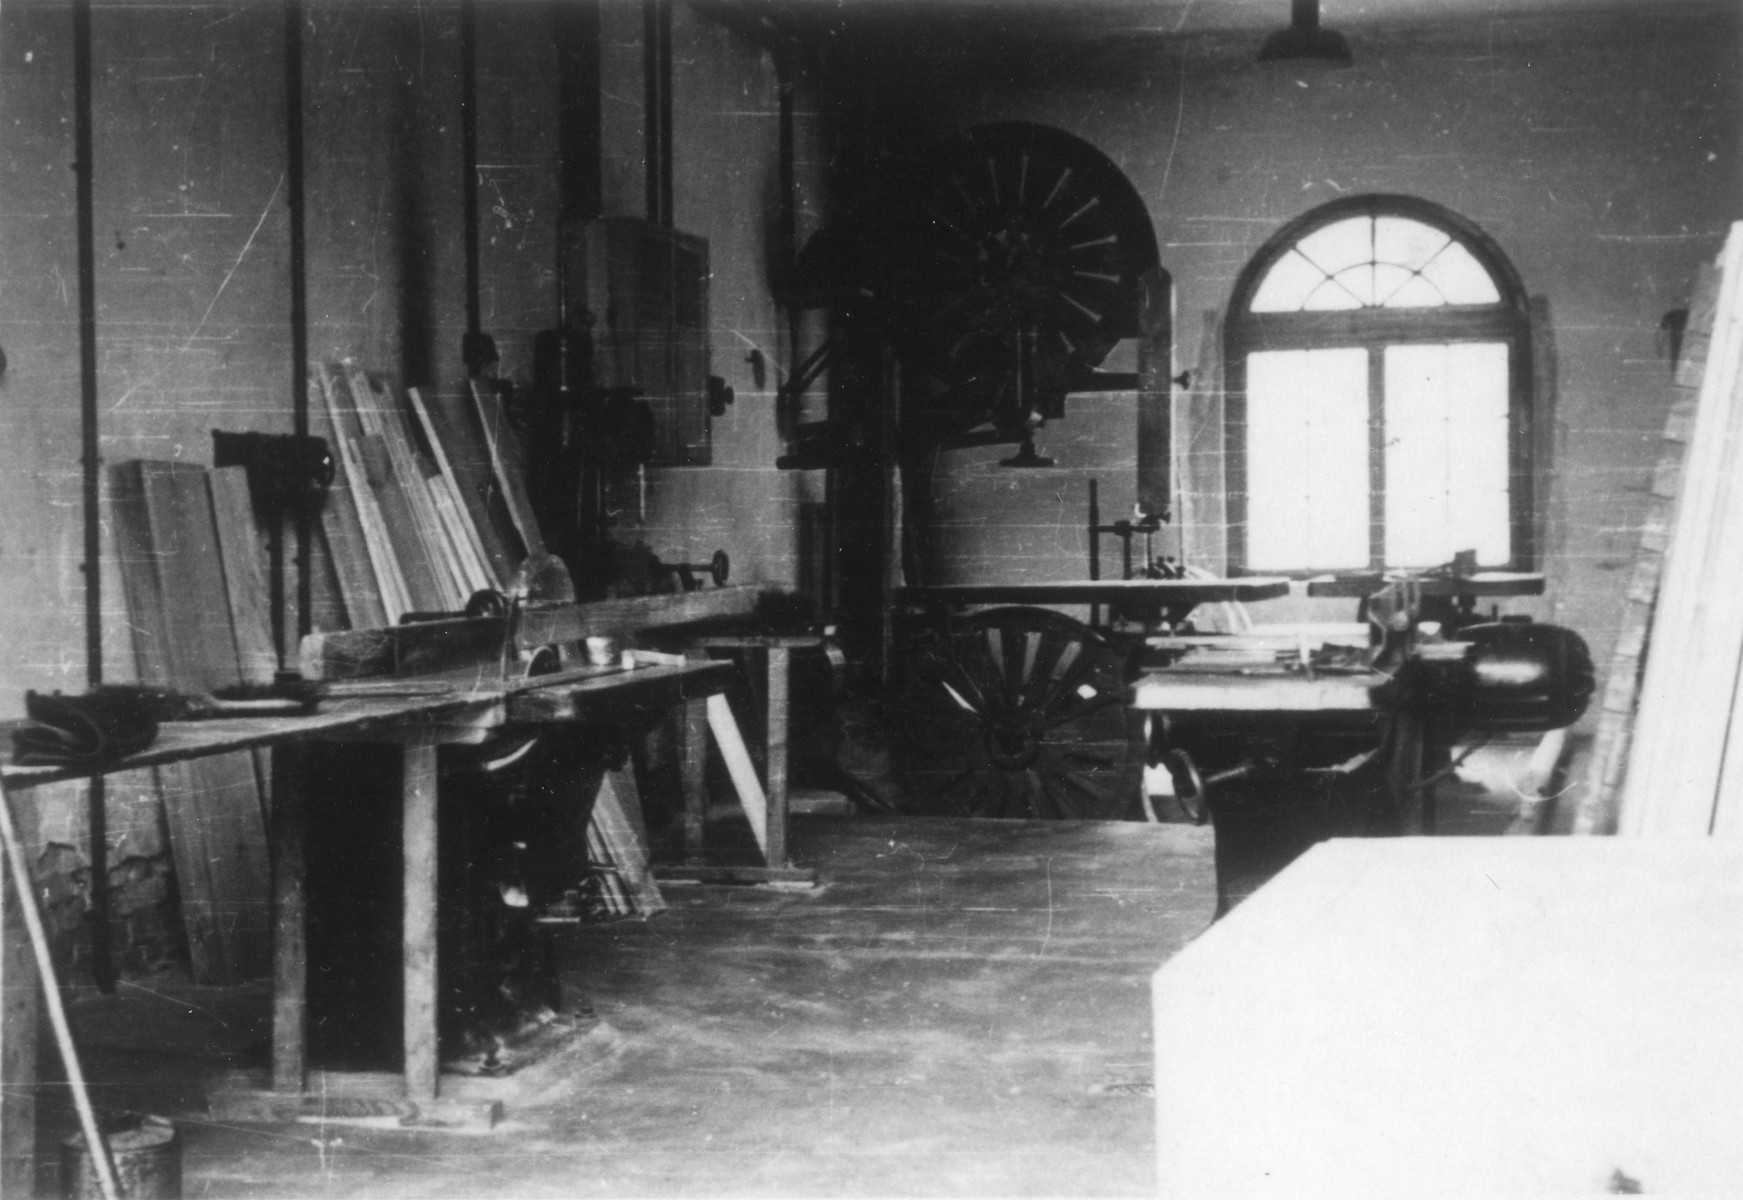 View of the carpentry shop in the Gross Breesen agricultural training center.